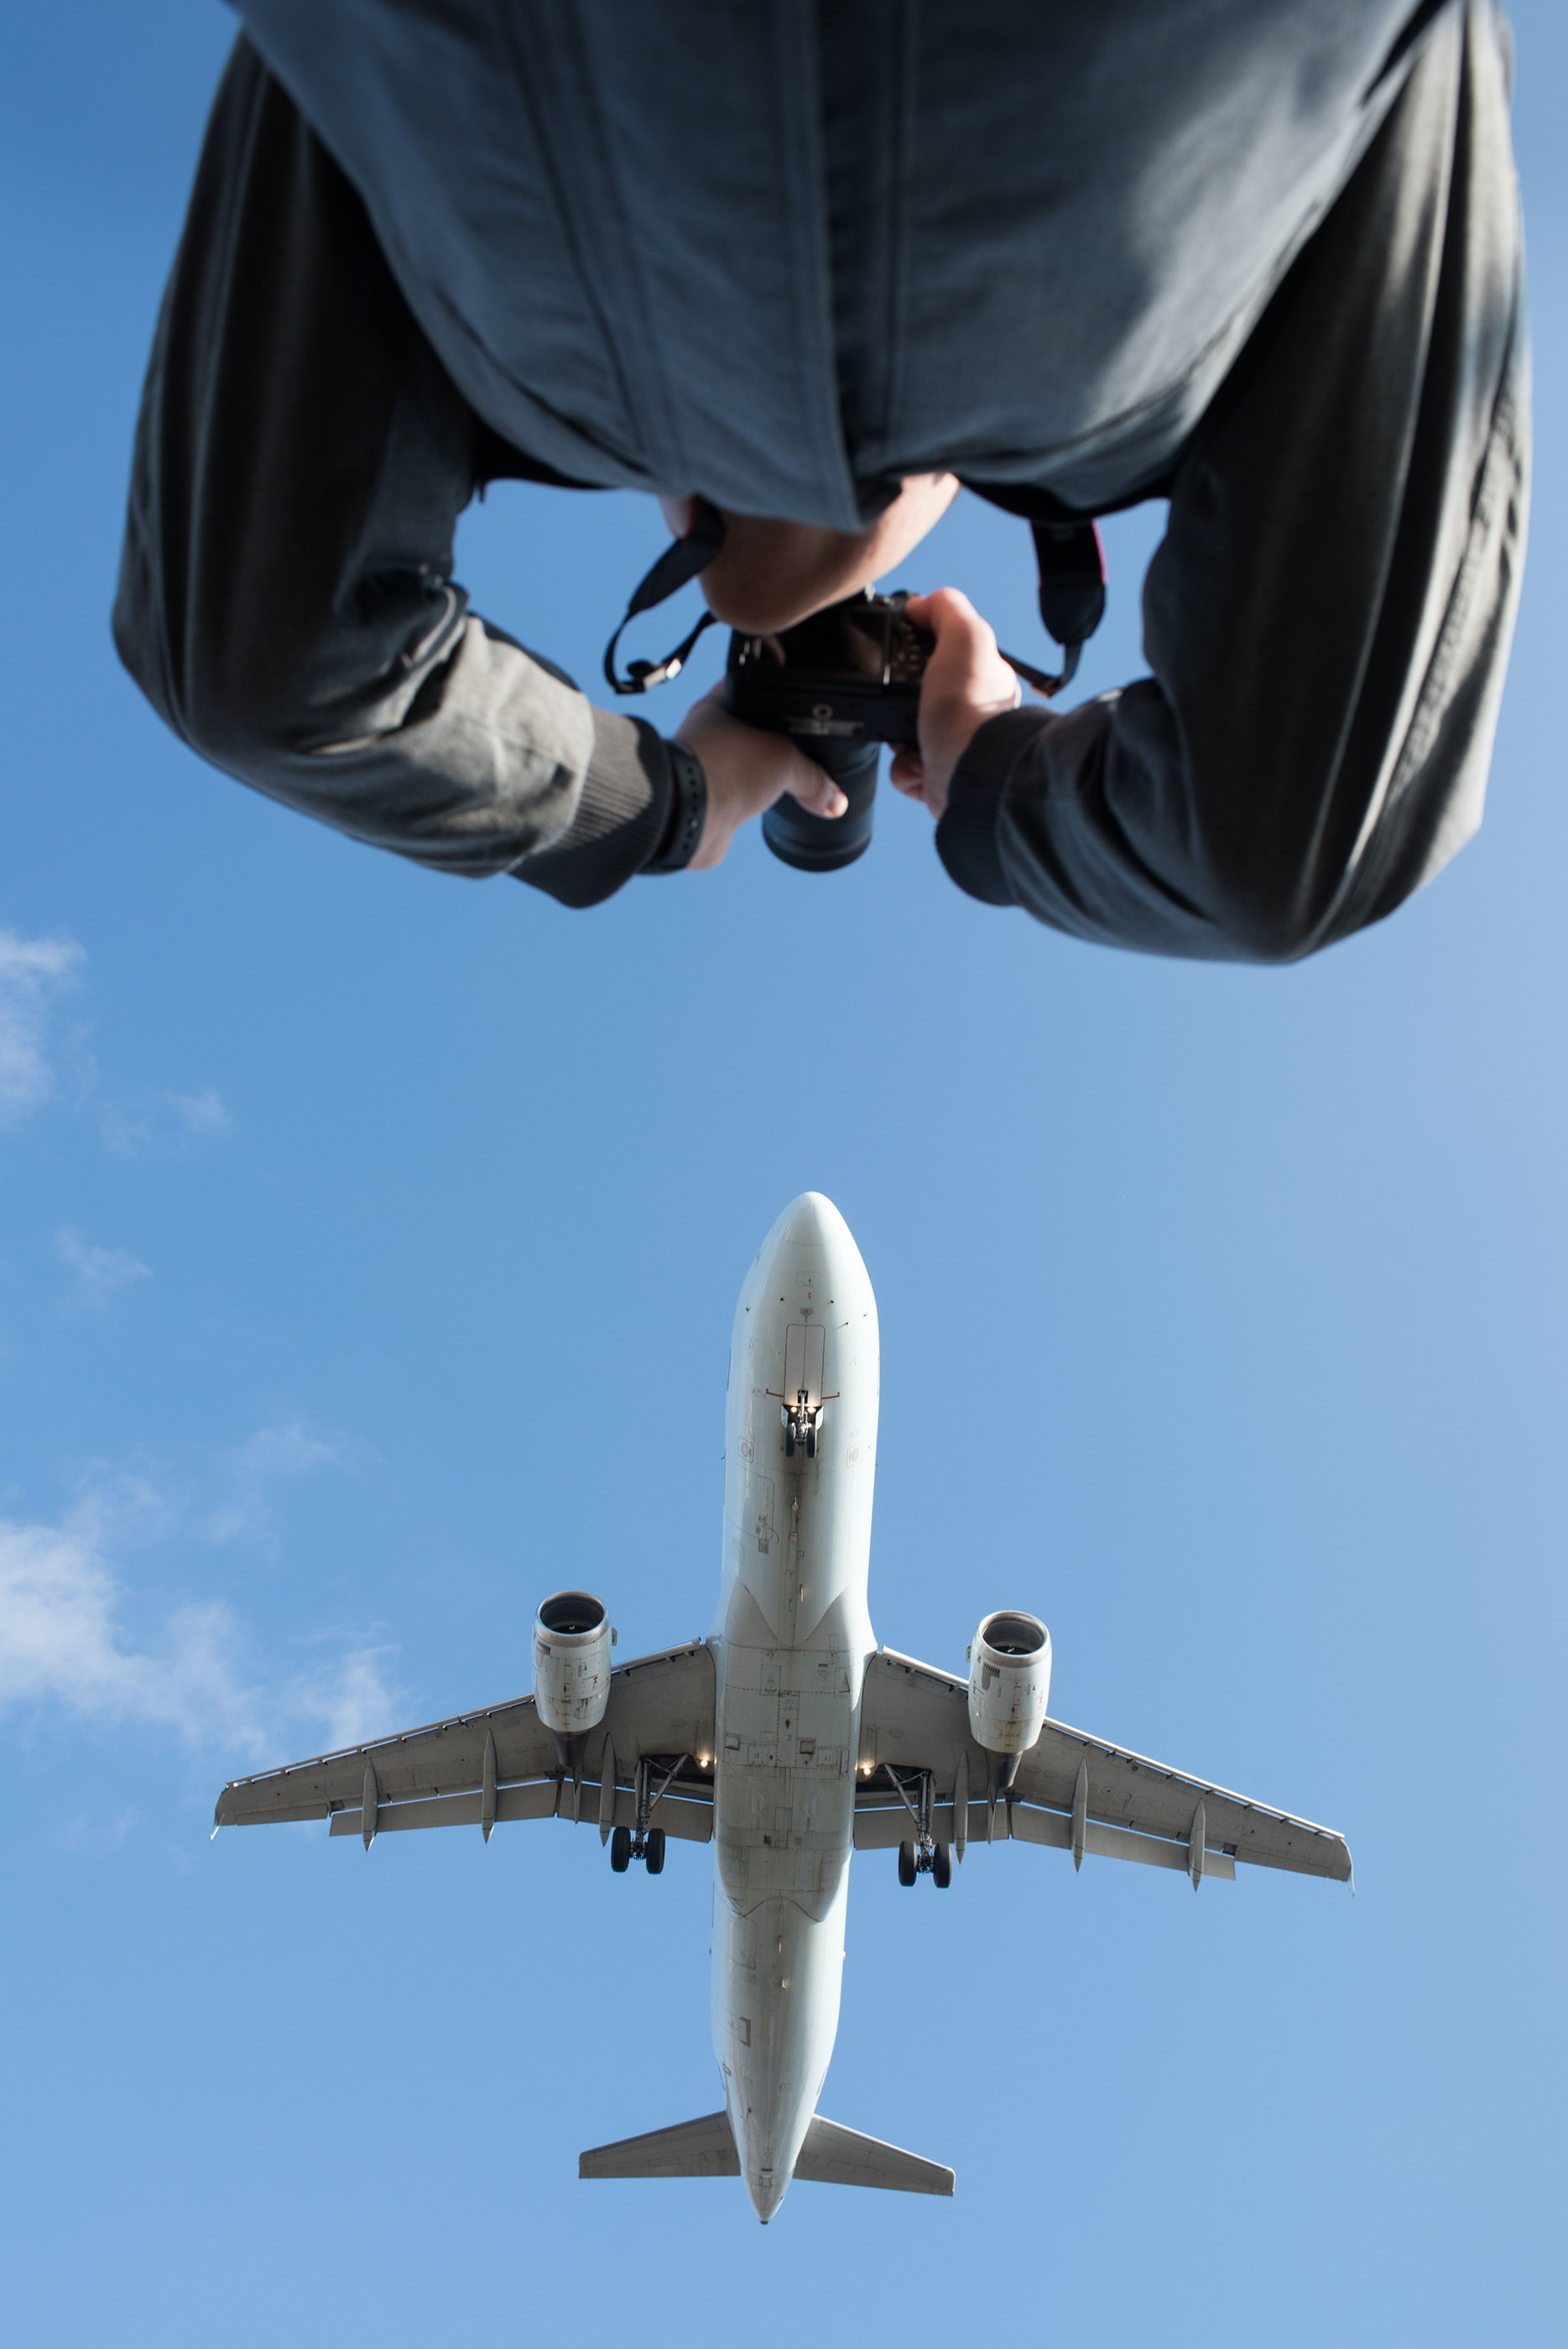 low angle photography of man taking photo of plane during daytime